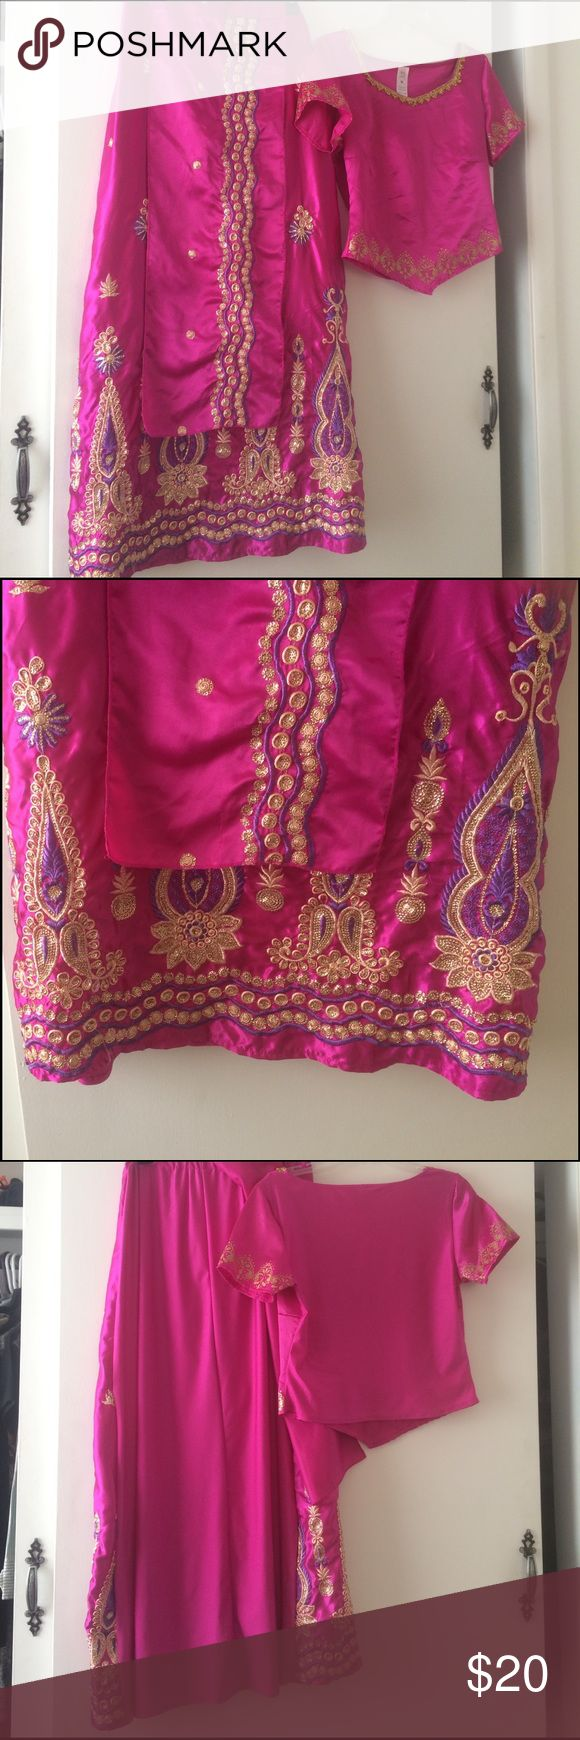 Beautiful Bollywood costume fuchsia, size M Beautiful Bollywood costume. Please note shirt is M and skirt says L but fits like a medium. The medium was like a small so I got the L instead. Priced to sell and looks authentic 💕Includes blouse, skirt and scarf. Other